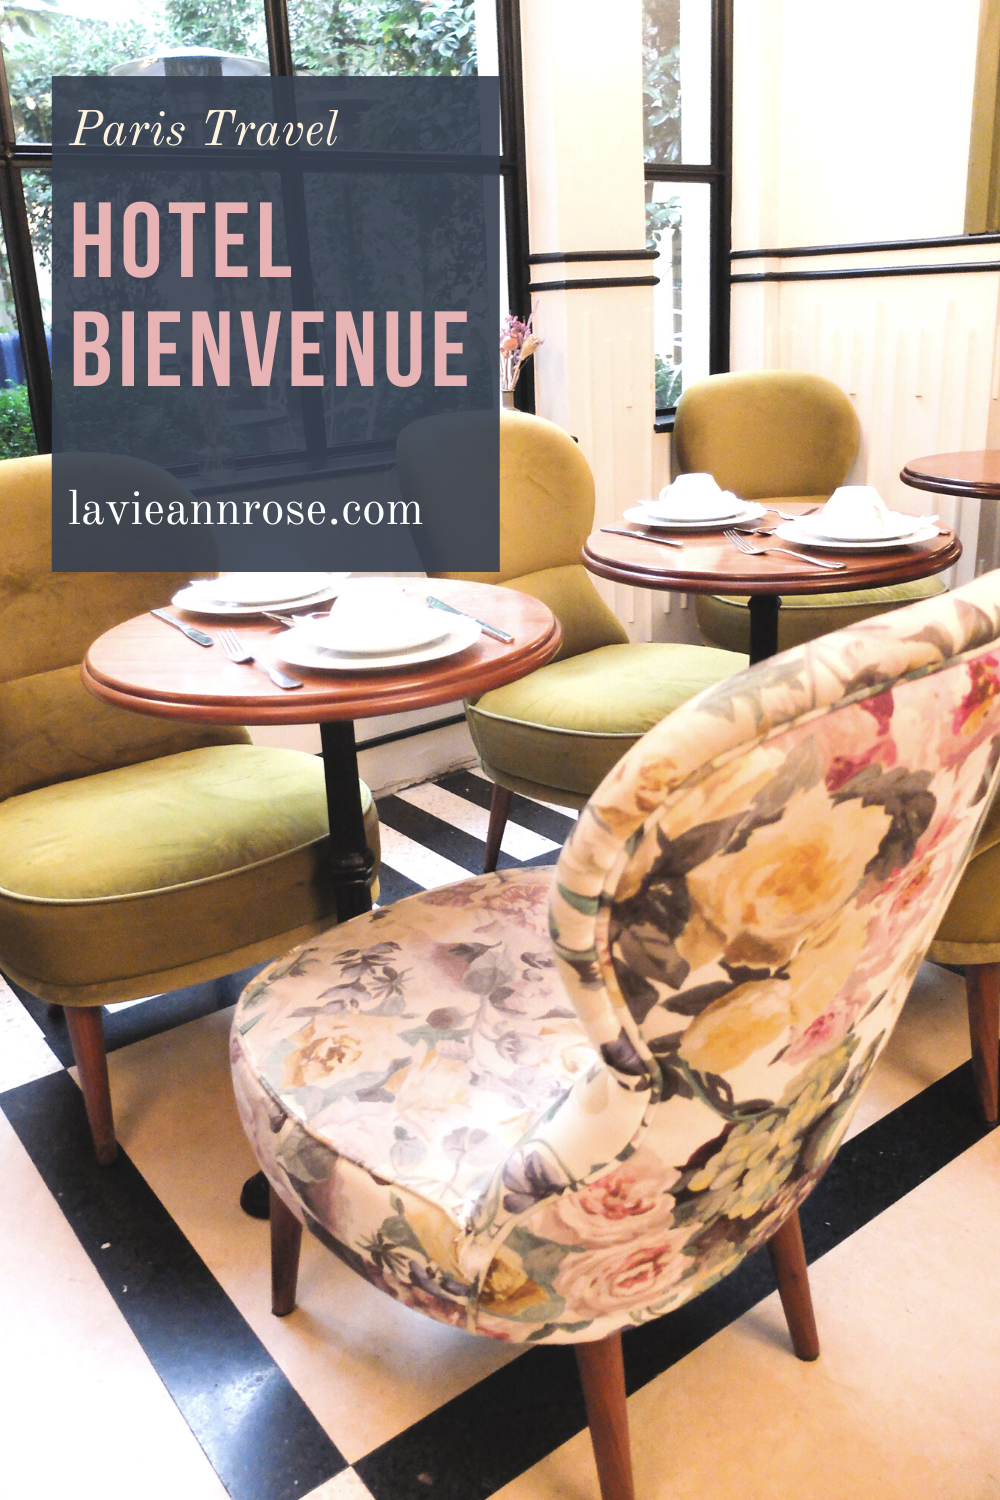 Sharing details about our stay at the Hotel Bienvenue Boutique Hotel in Paris with the prettiest floral decor, fantastic continental breakfast and more.#parisphotography #francetravel #frenchdecor #frenchhomedecor #francophilelifestyle #parisaesthetic#parisianchic #paristravel #parishotel #paris #france